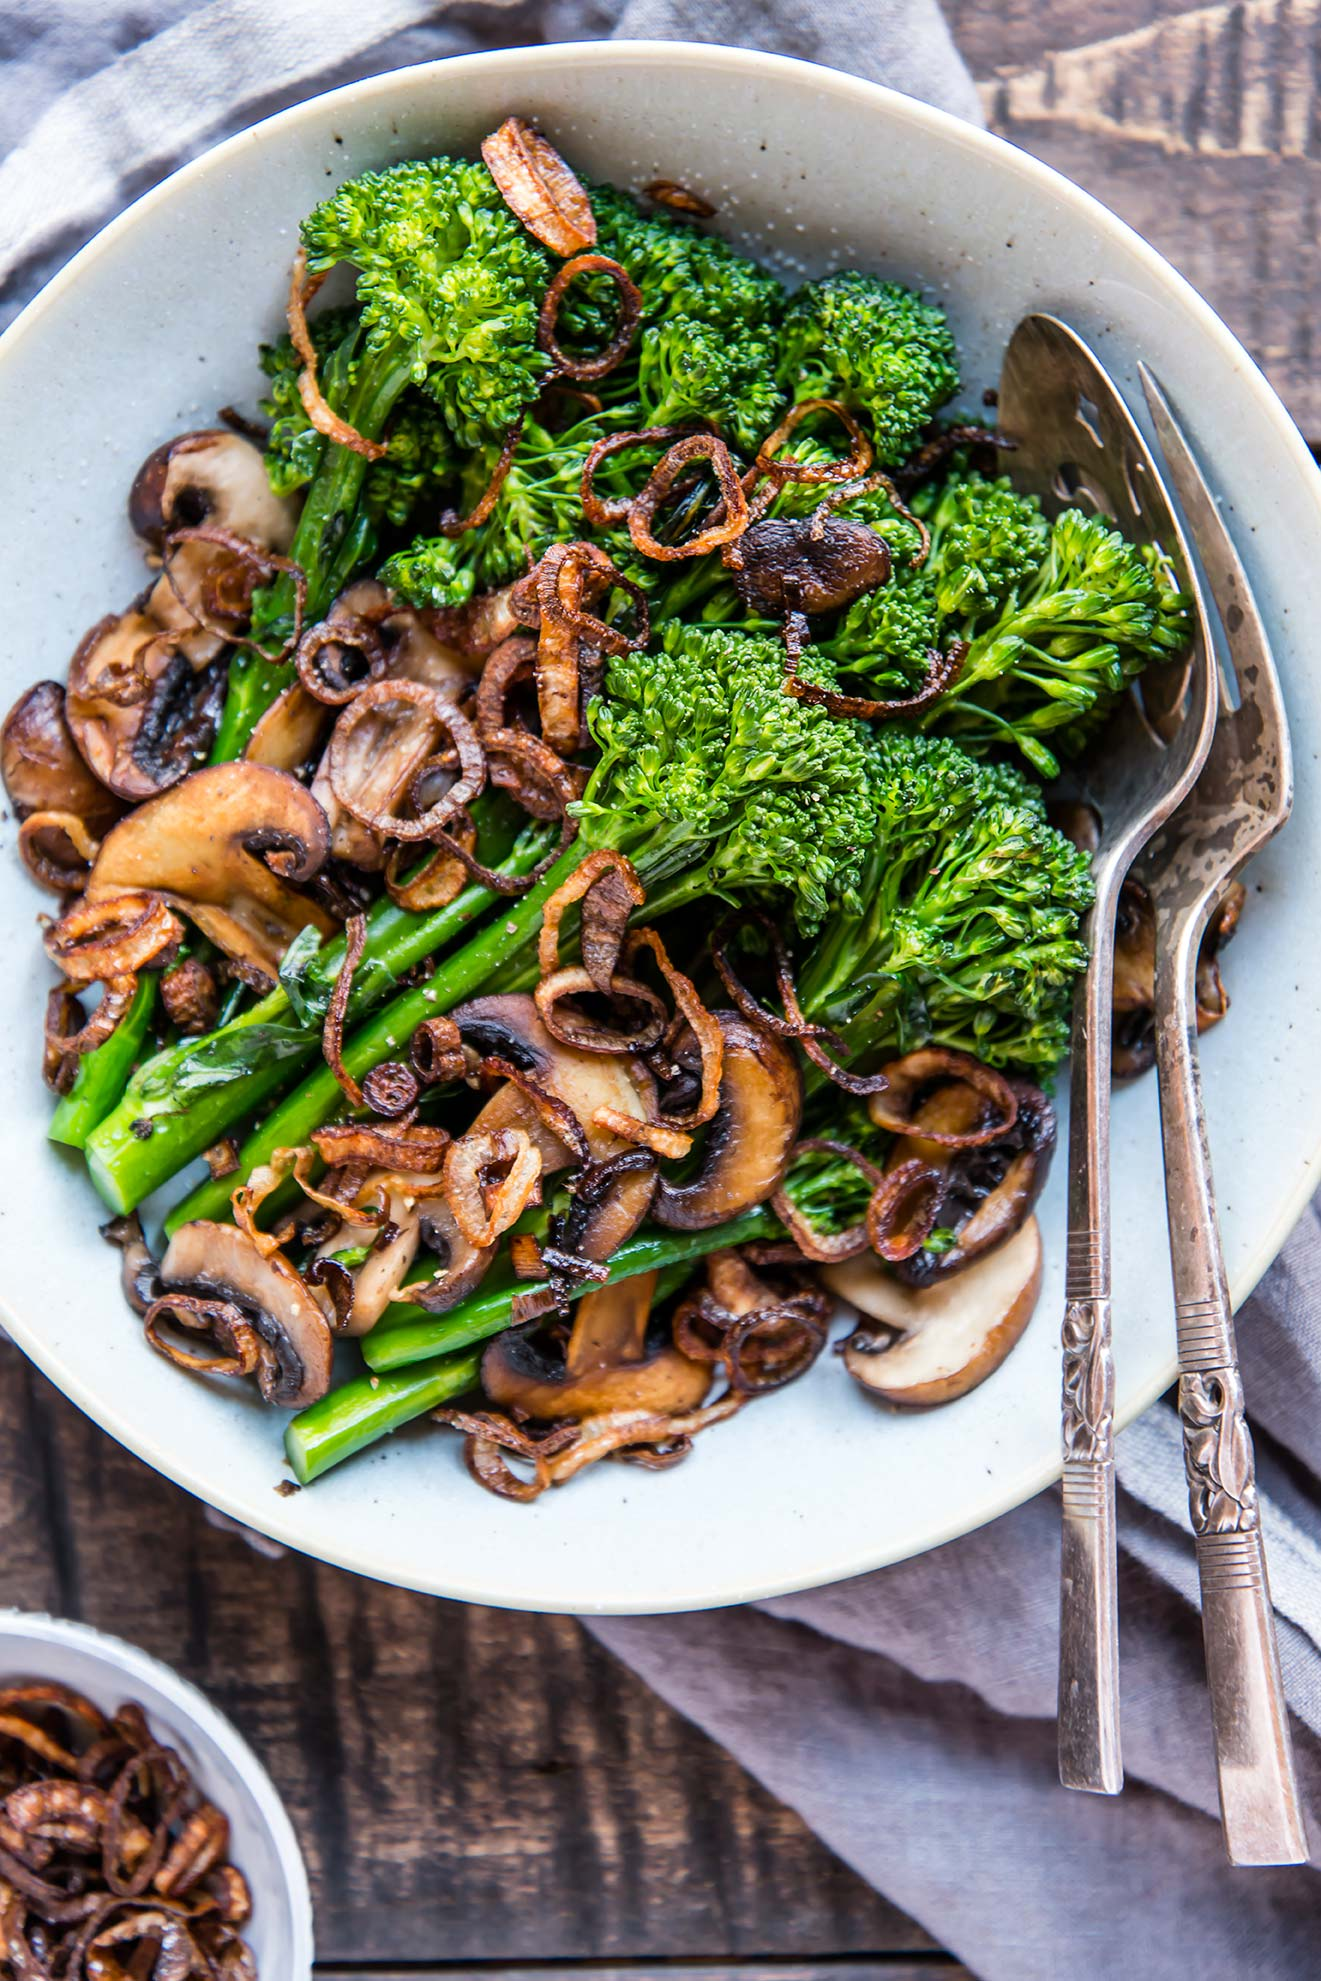 Broccolini & Mushrooms with Fried Shallots